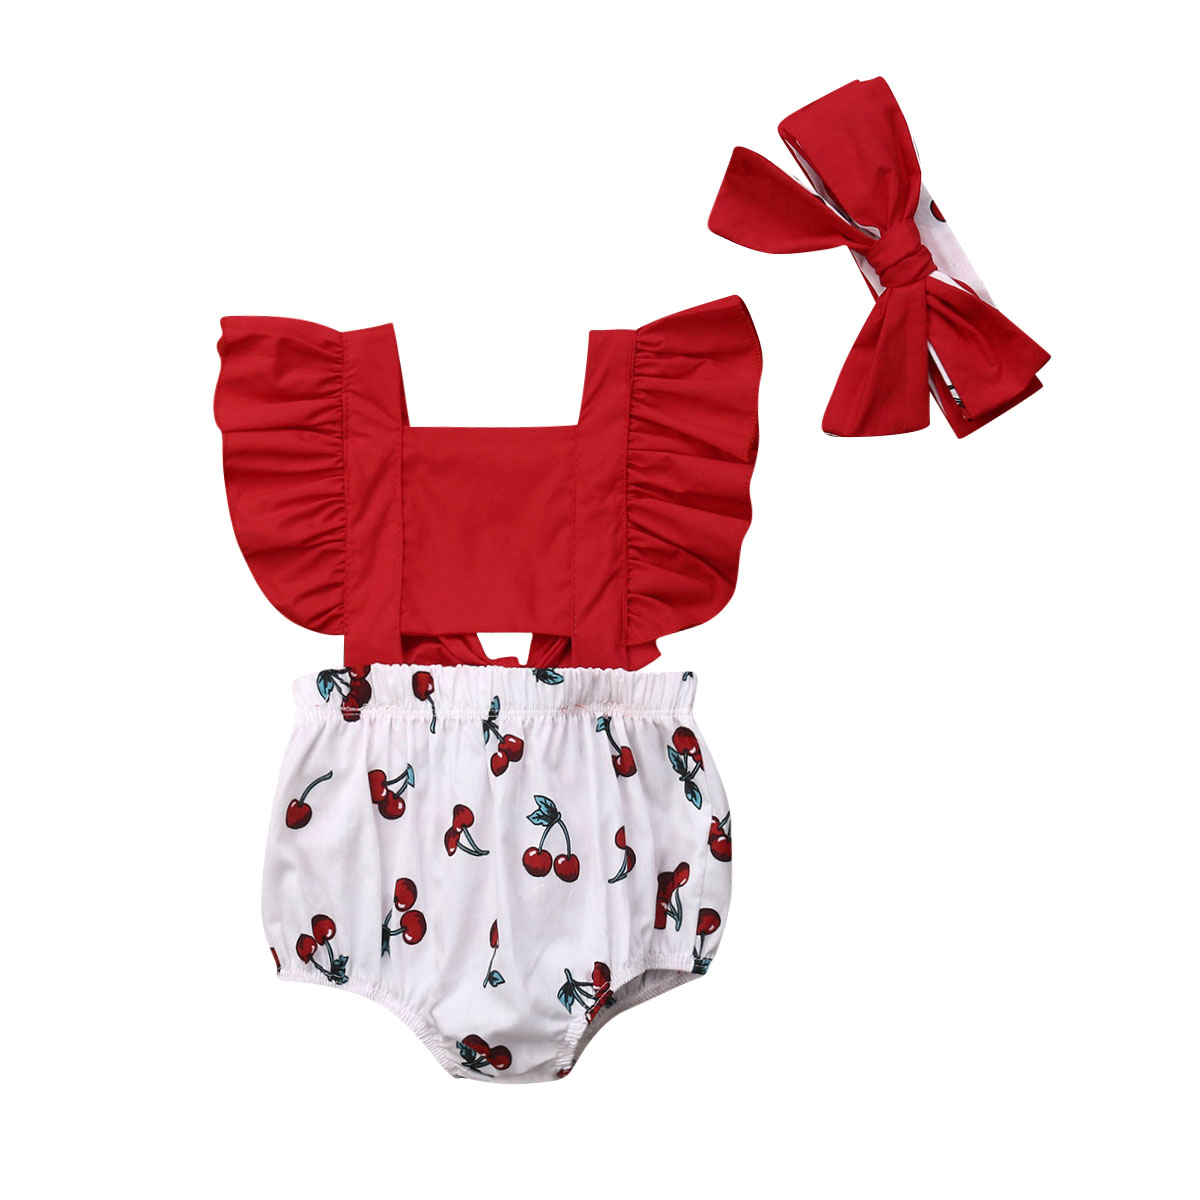 Emmababy Baby Clothes 2Pcs Newborn Infant Baby Girl Ruffle Cherry Sleeveless Bodysuit Sun Outfit Summer